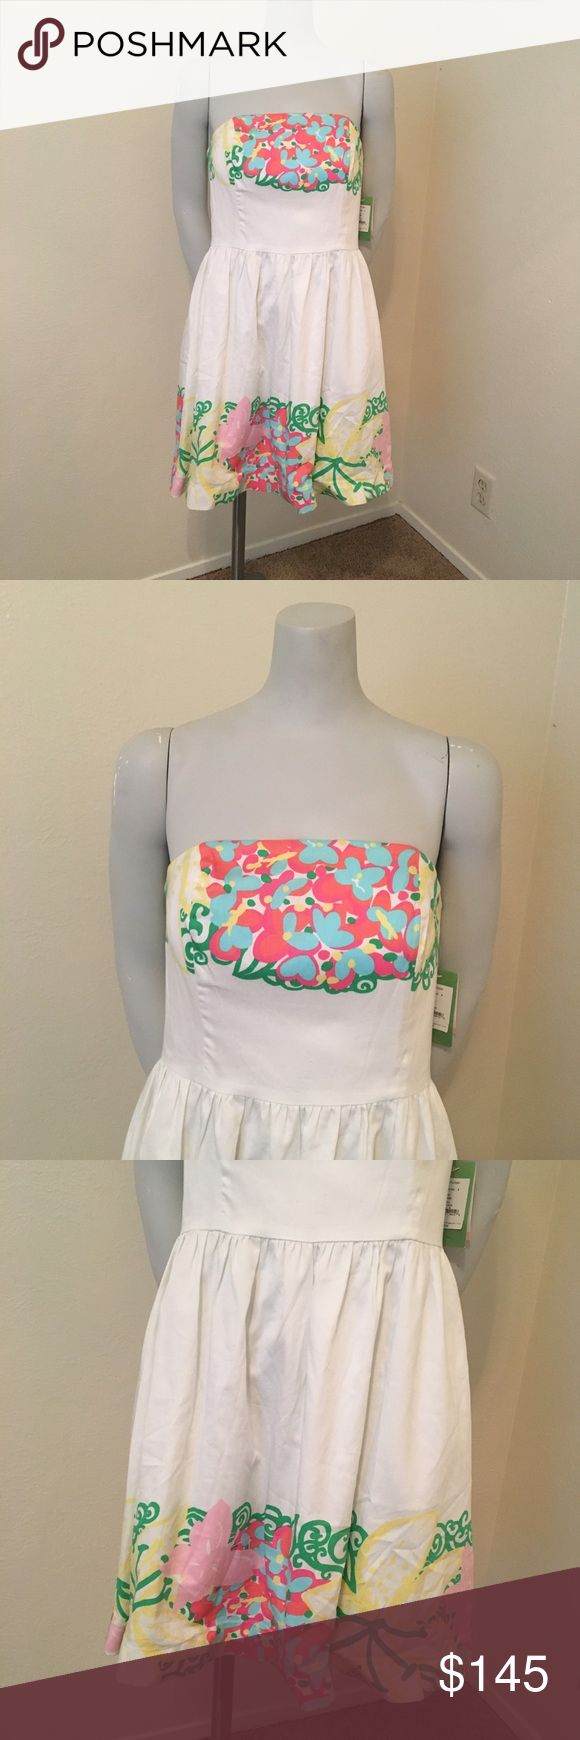 """NWT Lilly Pulitzer Lottie Dress in Mariposa Placed Item: Lilly Pulitzer """"Lottie"""" Dress   - Size: 6  - Material: 100% cotton - Condition: NWT  - Color: Resort White Mariposa Placed - Pockets:  - Lined: yes - Style: Lottie  *Measurements:  Bust: 15"""" Waist: 14.5"""" Length: approx 29""""    * Almost all my prices are negotiable and no offer offends me! * Lilly Pulitzer Dresses Strapless"""